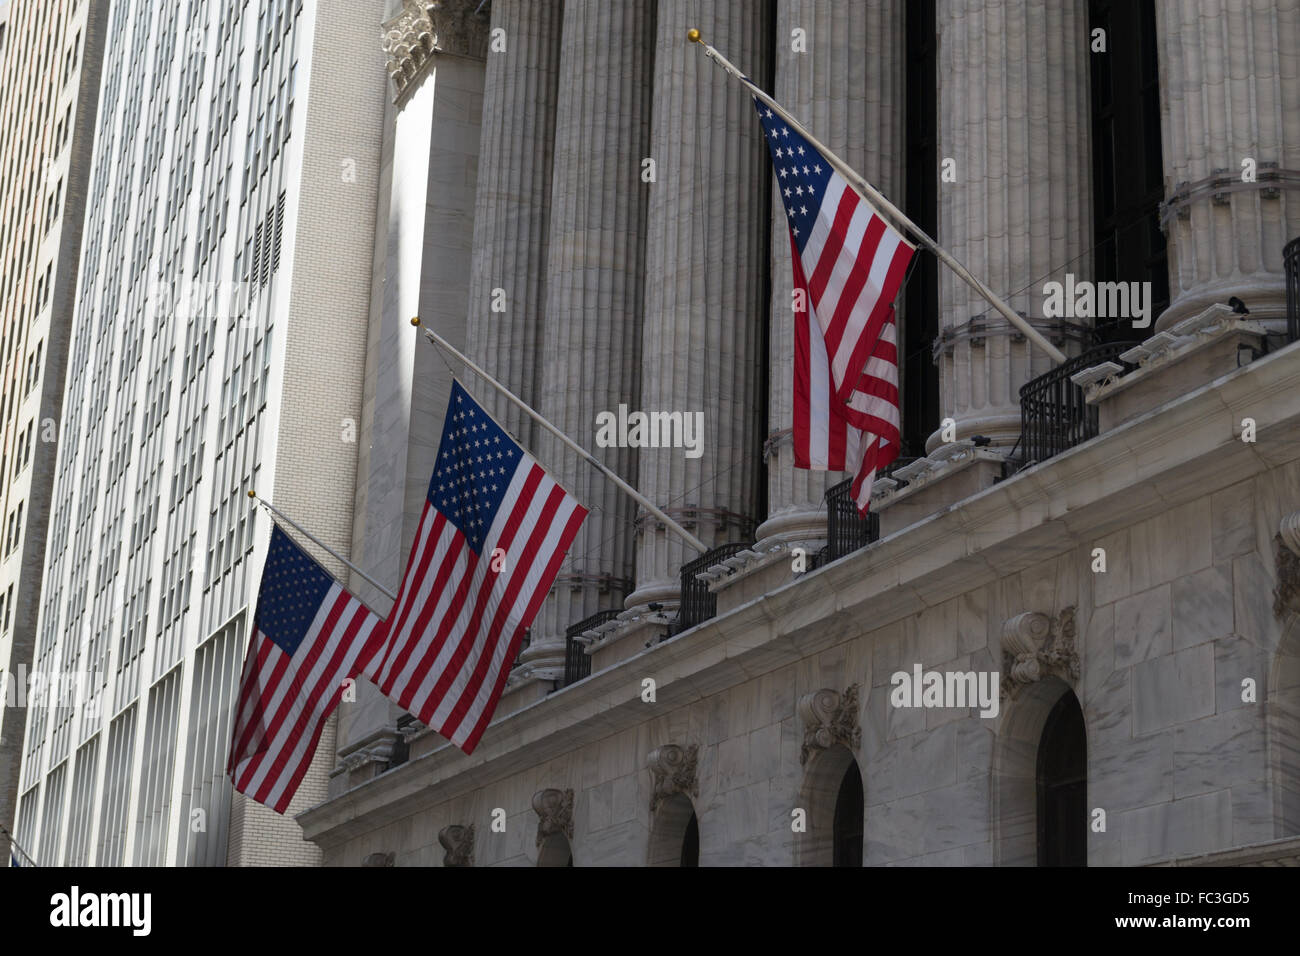 American flags and stock exchange - Stock Image